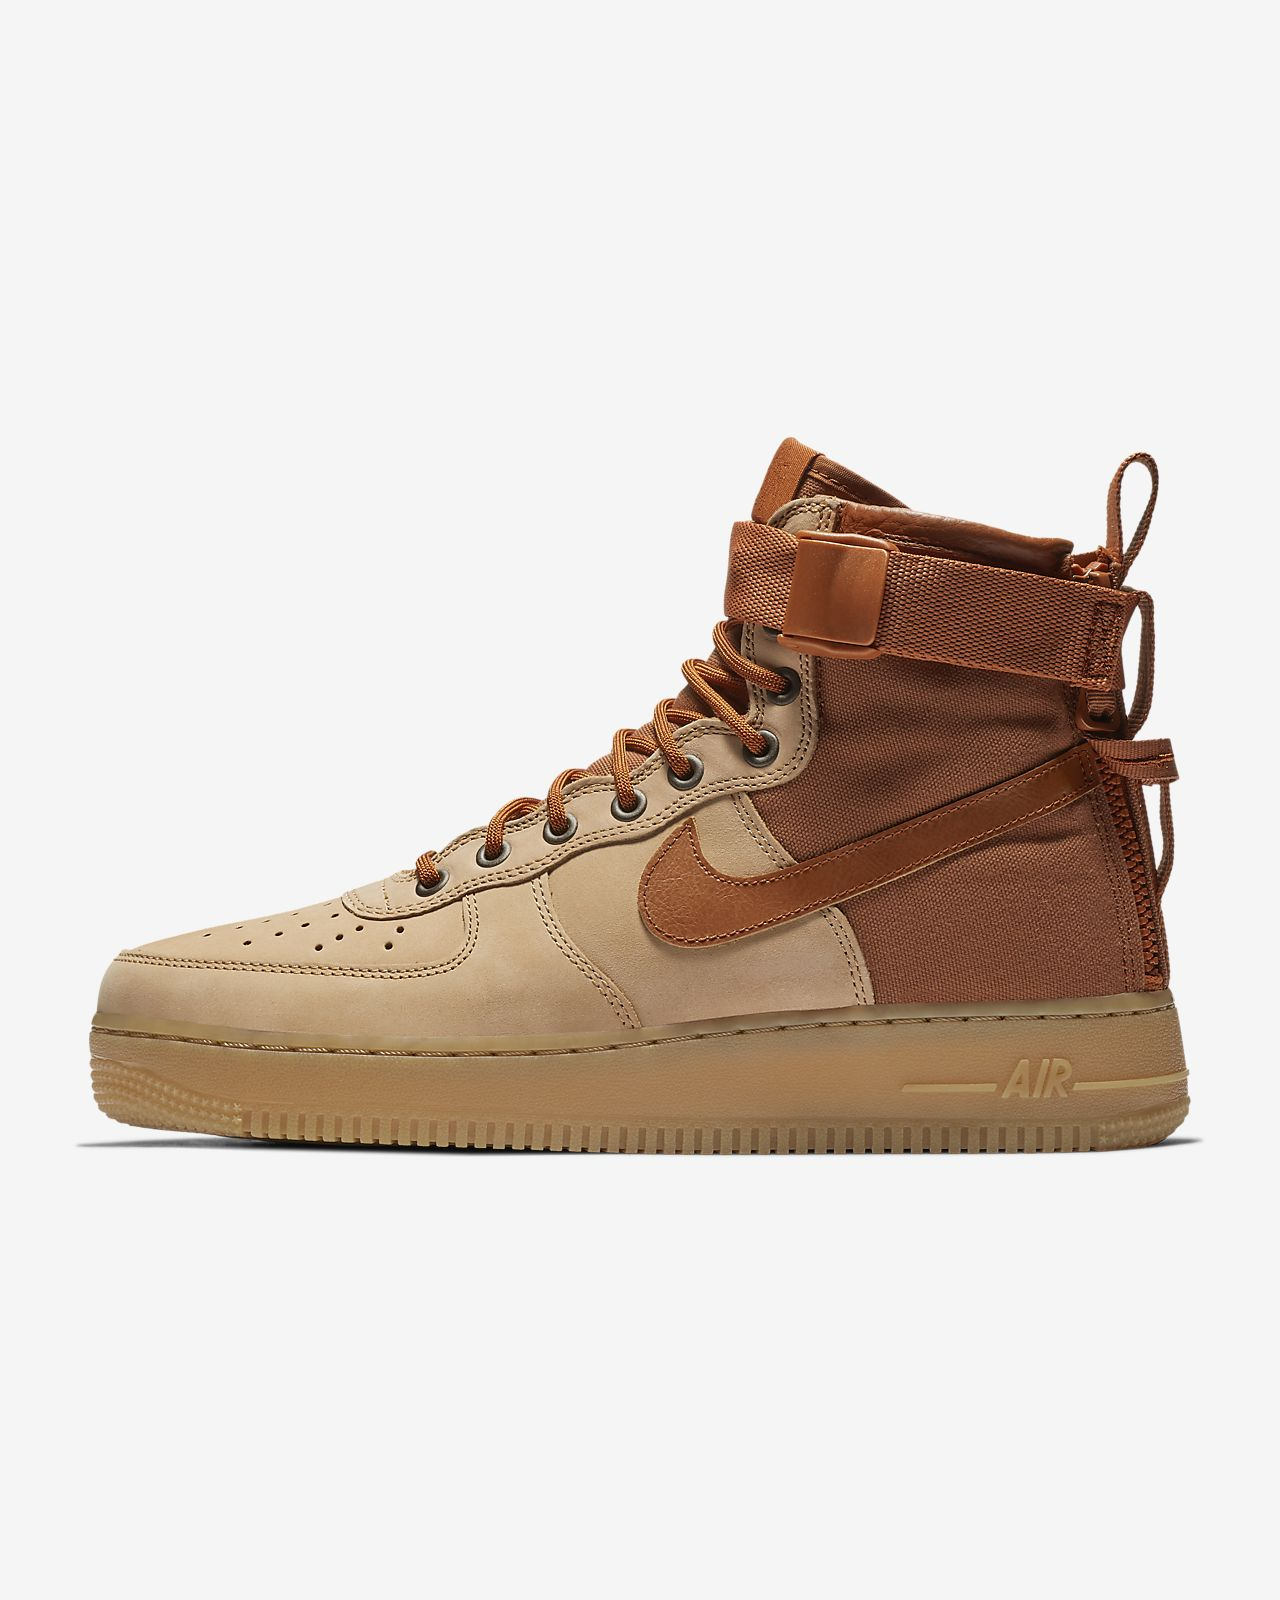 air force 1 sf uomo